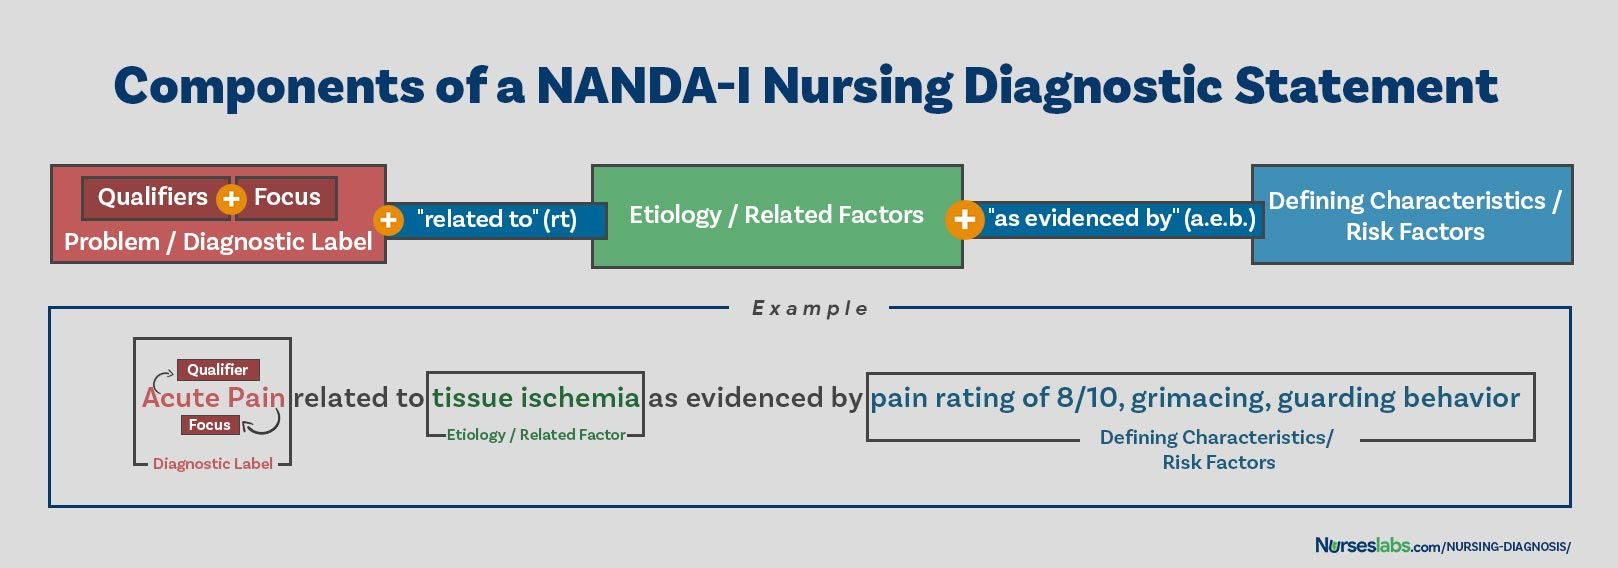 Components of a Nursing Diagnosis Statement